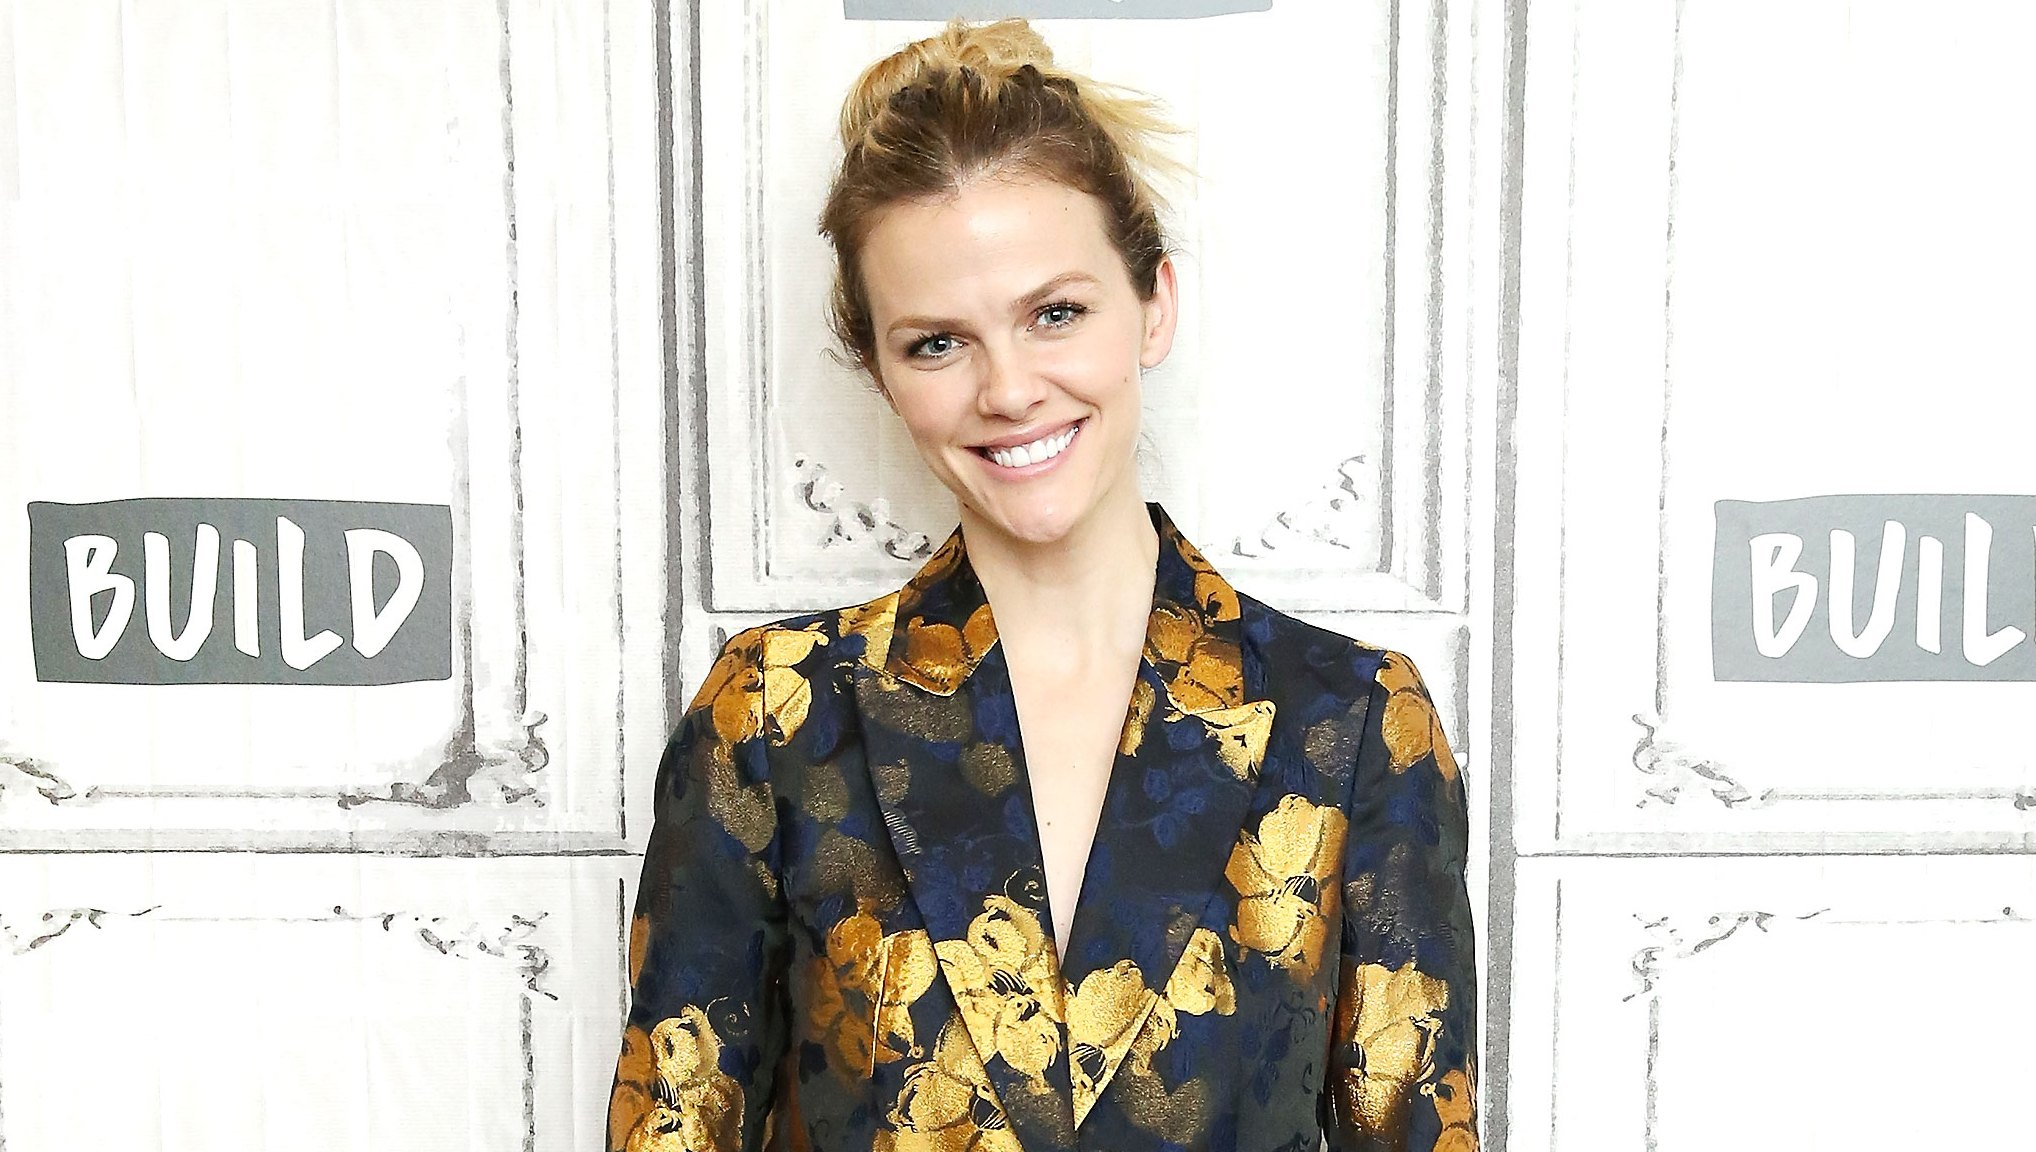 Brooklyn Decker Slams Body Shamers After Children 'Sucked the Life' Out of Her Body: 'I Miss My Boobs Too'